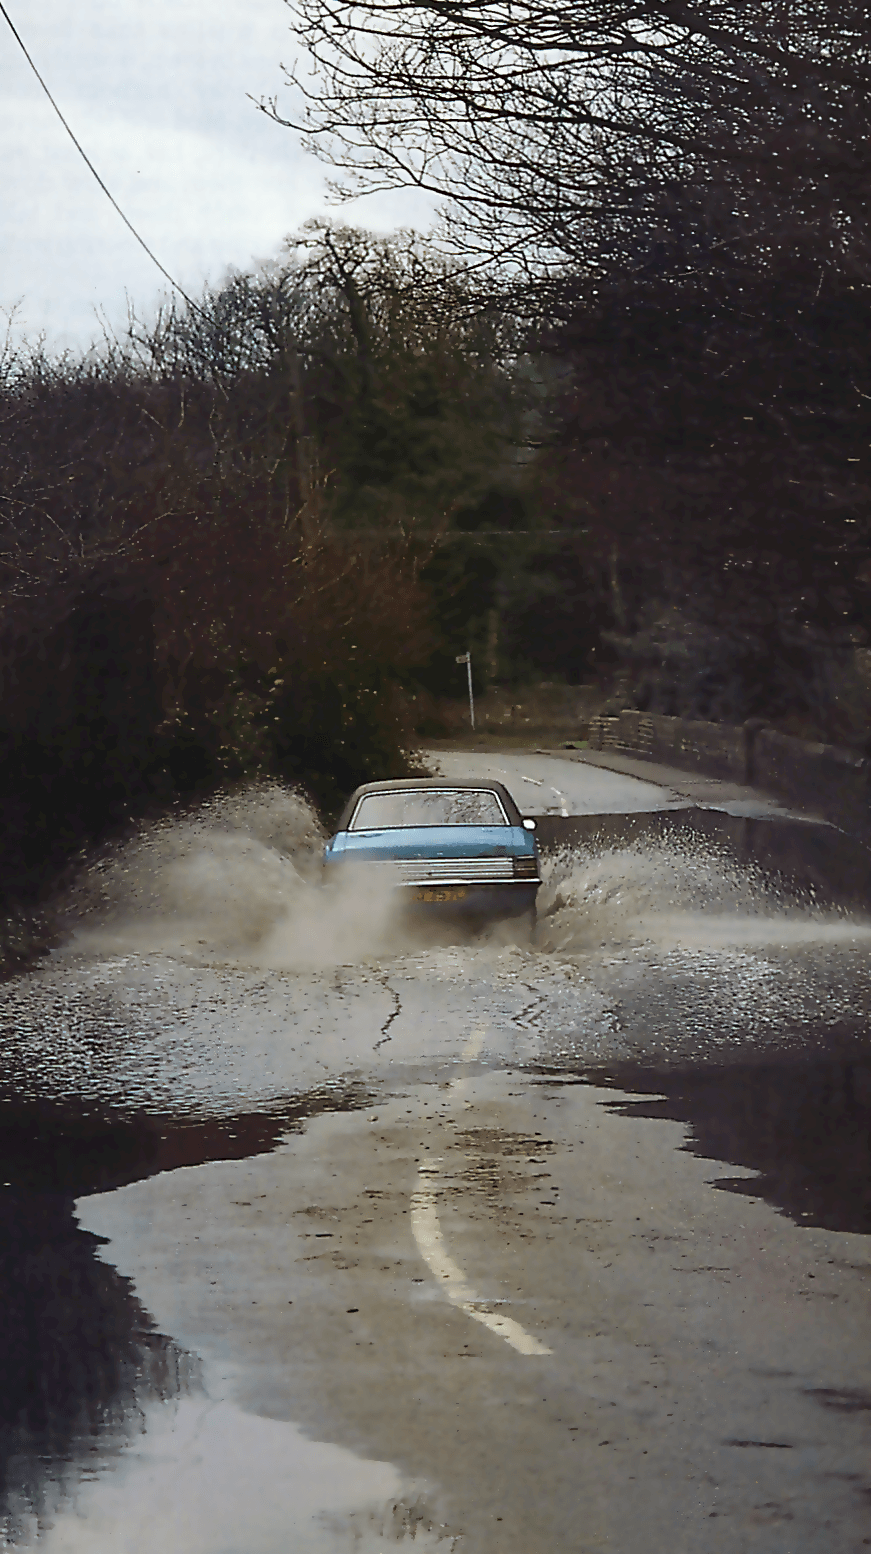 Driving through flooded roads